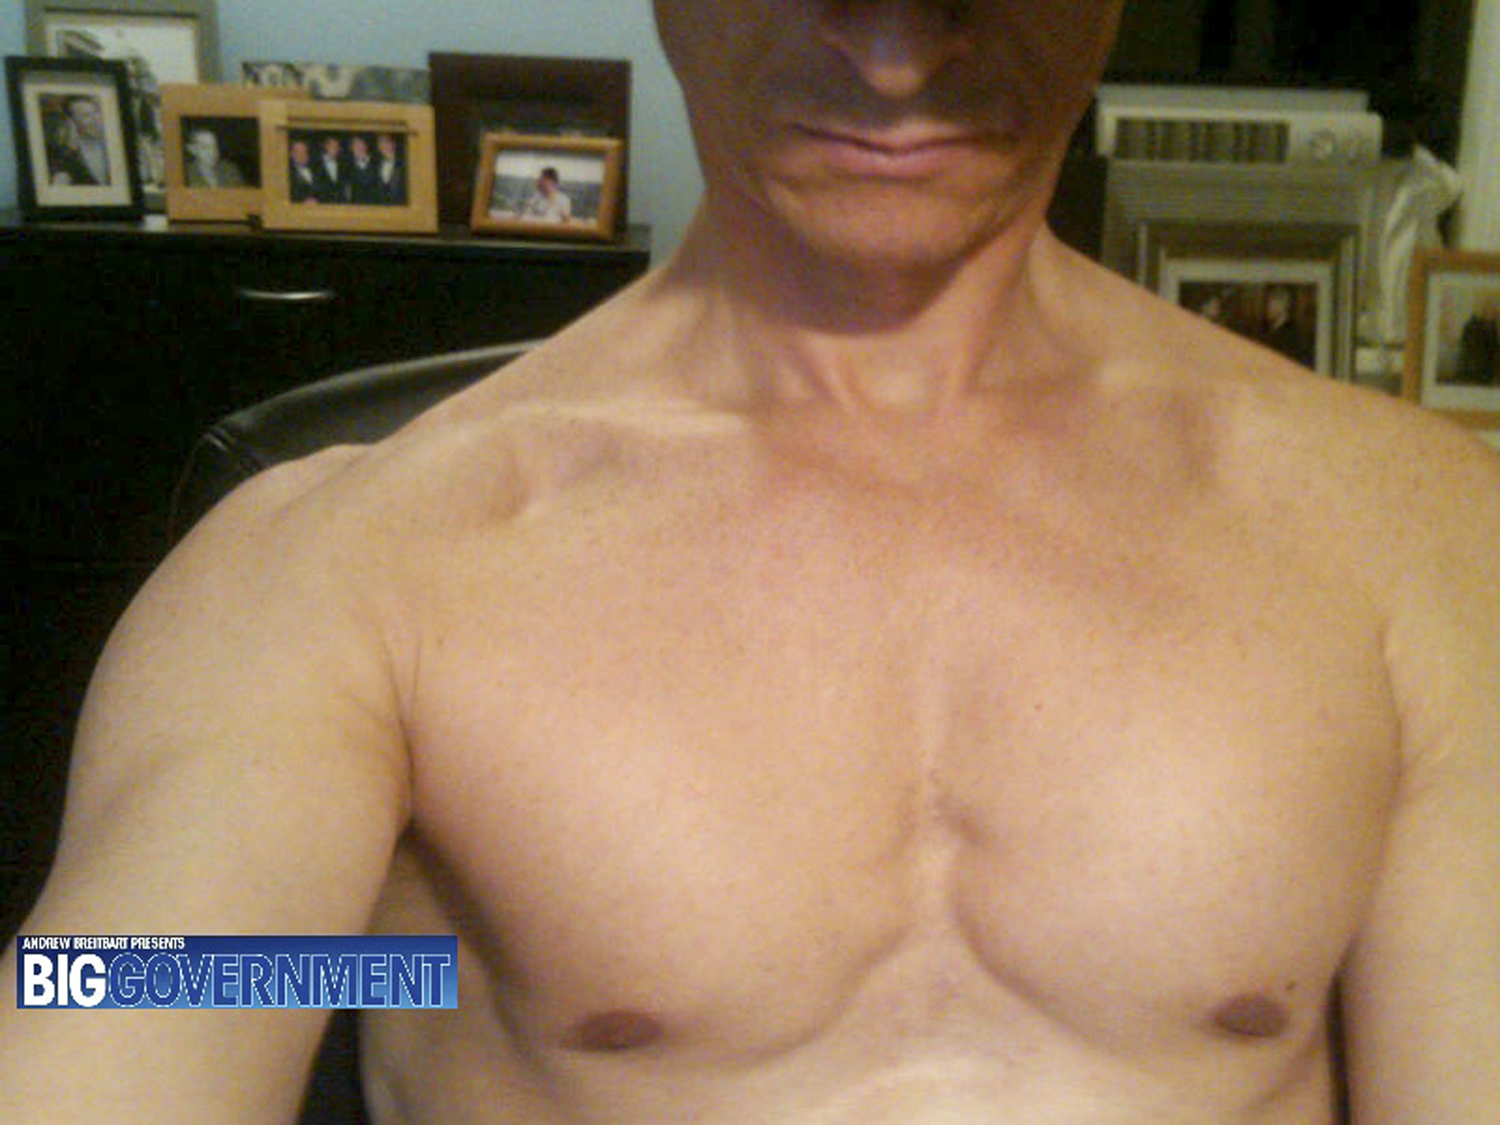 Conservative blogger Andrew Breitbart published this photograph of Congressman Anthony Weiner on his website, Bigjournalism.com, from where it spread across the internet.                                                              Breibart posted the image in response to Weiner's denials that he had tweeted a lewd pictures of himself on Twitter. Because of its graphic nature, the photo was not widely reproduced on mainstream media websites (and will thus not be re-printed here), but this subsequent shot, showing a shirtless Weiner seated in front of a computer, gained wide currency at the same time. Apparently sent by Weiner to a Texas woman a few weeks before the more explicit image became public, it, too, first surface on Breitbart's site and increased the pressure on Weiner, who subsequently acknowledged sending the images and on June 16 announced his resignation from Congress.